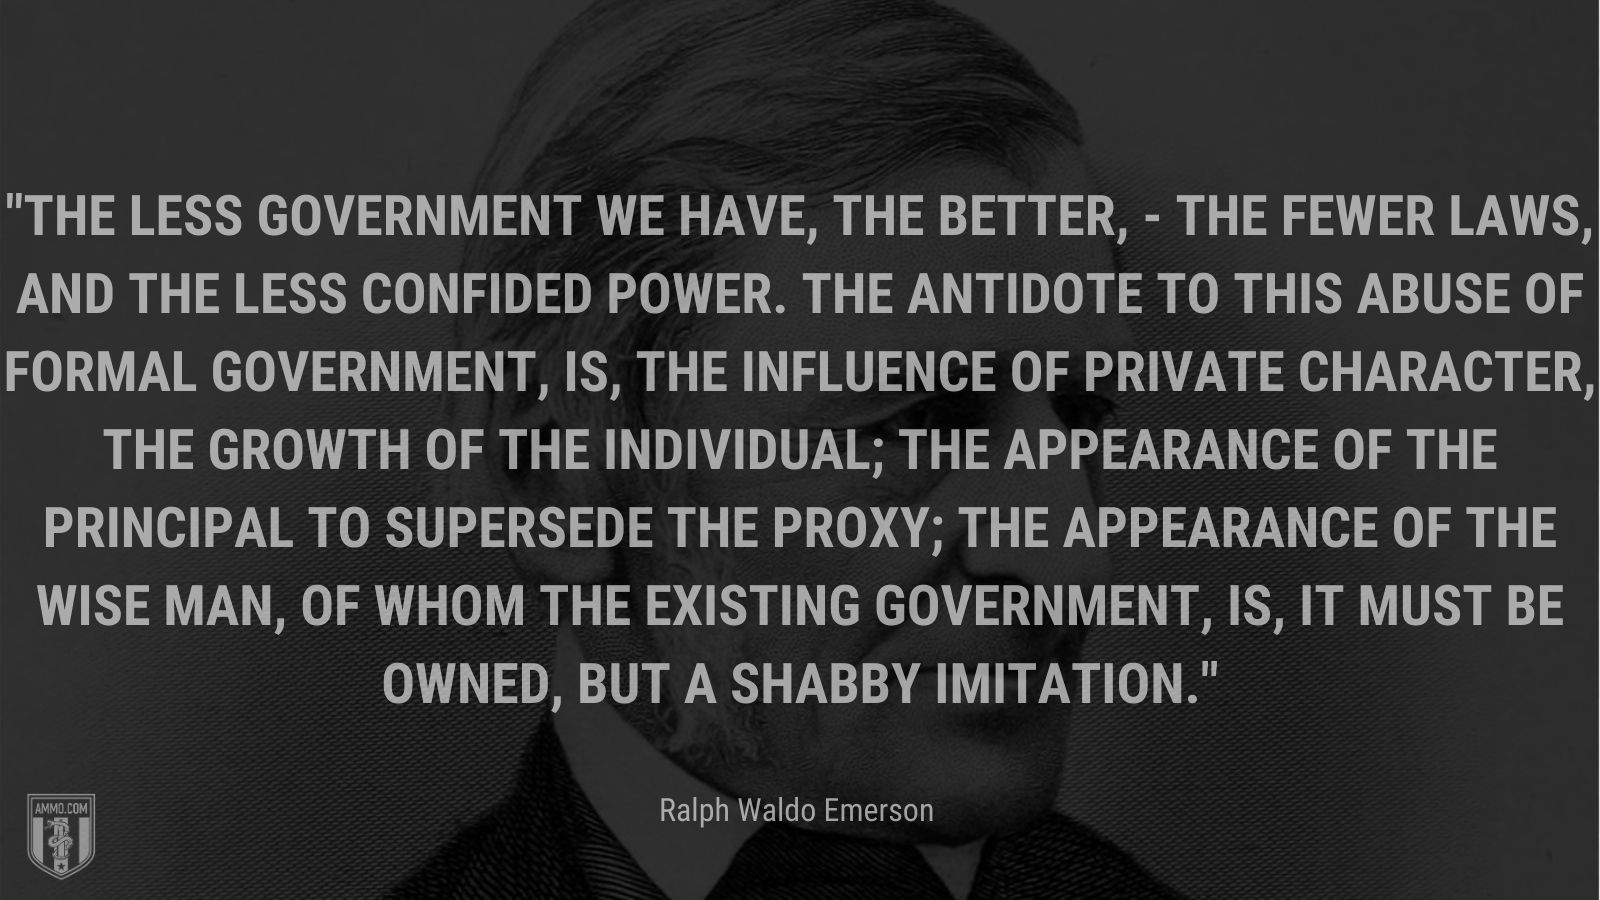 """""""The less government we have, the better, - the fewer laws, and the less confided power. The antidote to this abuse of formal Government, is, the influence of private character, the growth of the Individual; the appearance of the principal to supersede the proxy; the appearance of the wise man, of whom the existing government, is, it must be owned, but a shabby imitation. - Ralph Waldo Emerson"""